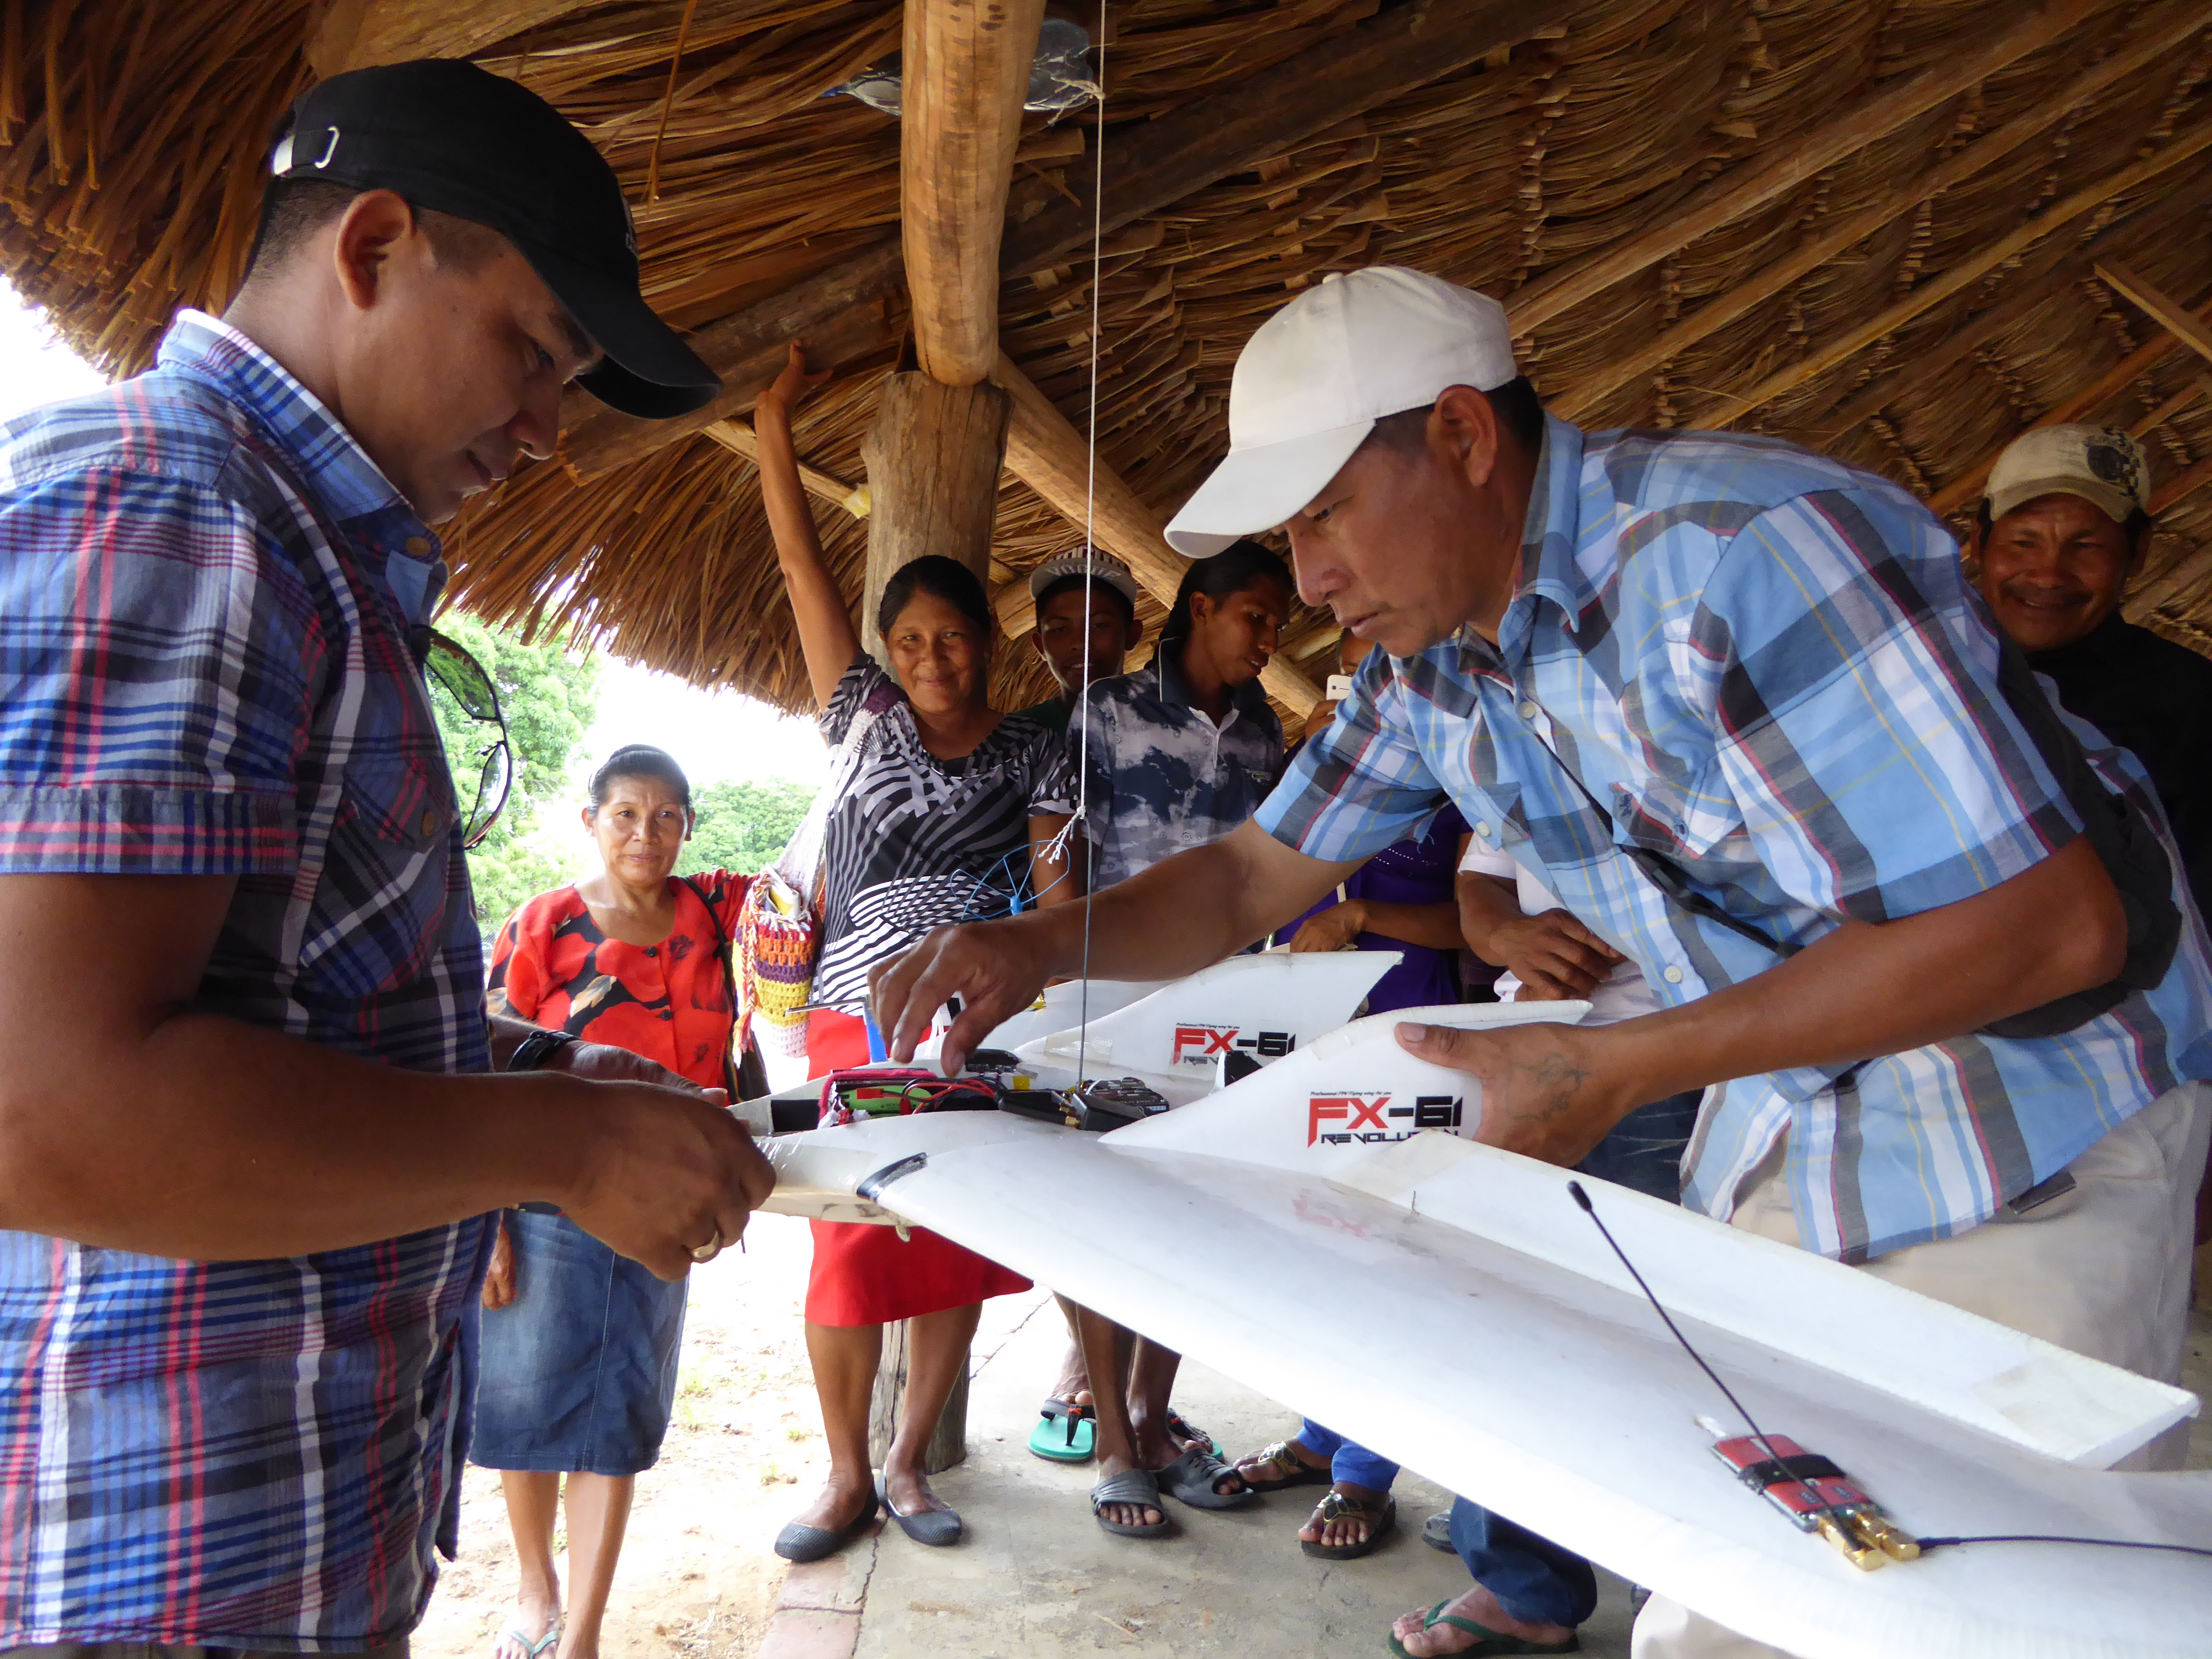 Members of Guyana's Wapichan community built a drone to monitor illegal logging and pollution.